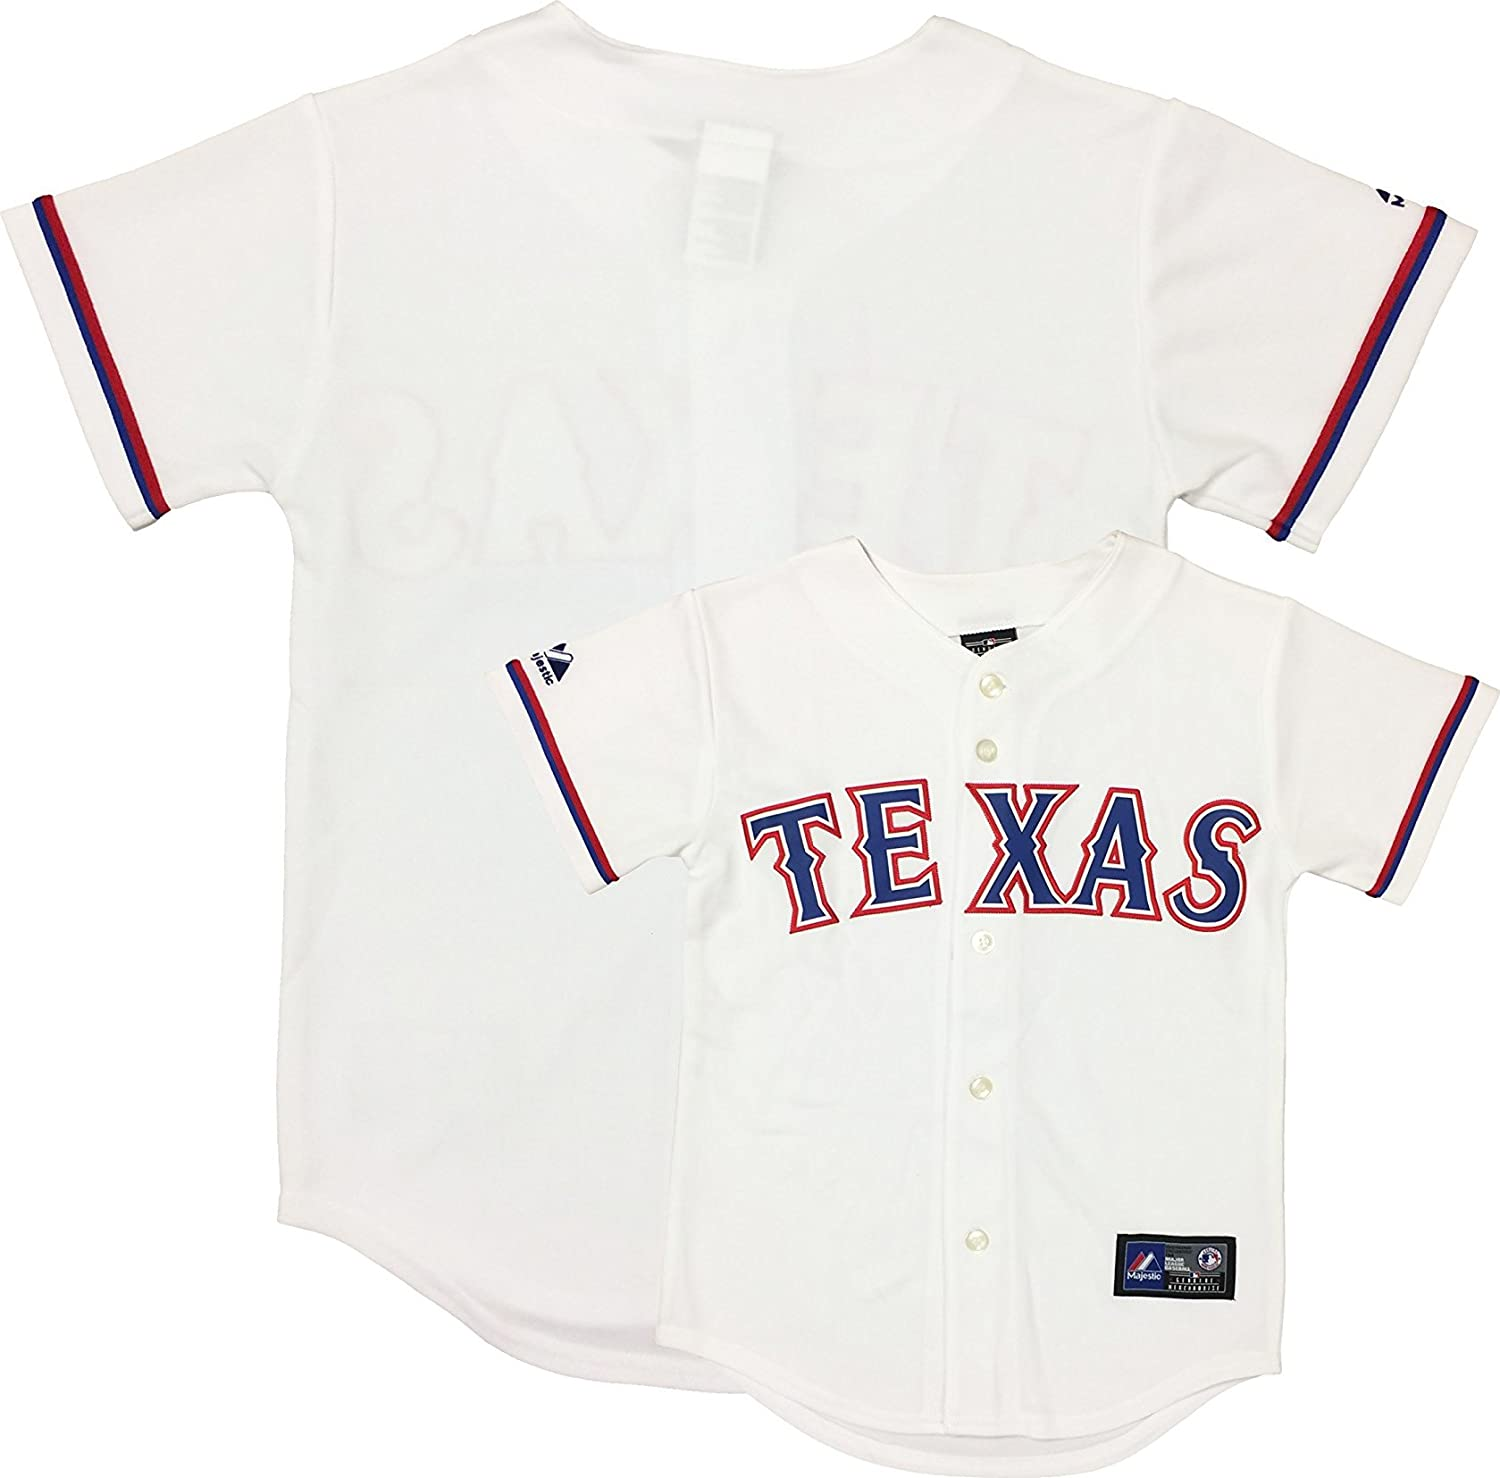 release date caadd 374cb OuterStuff Texas Rangers Word Mark White Kids Authentic Home ...